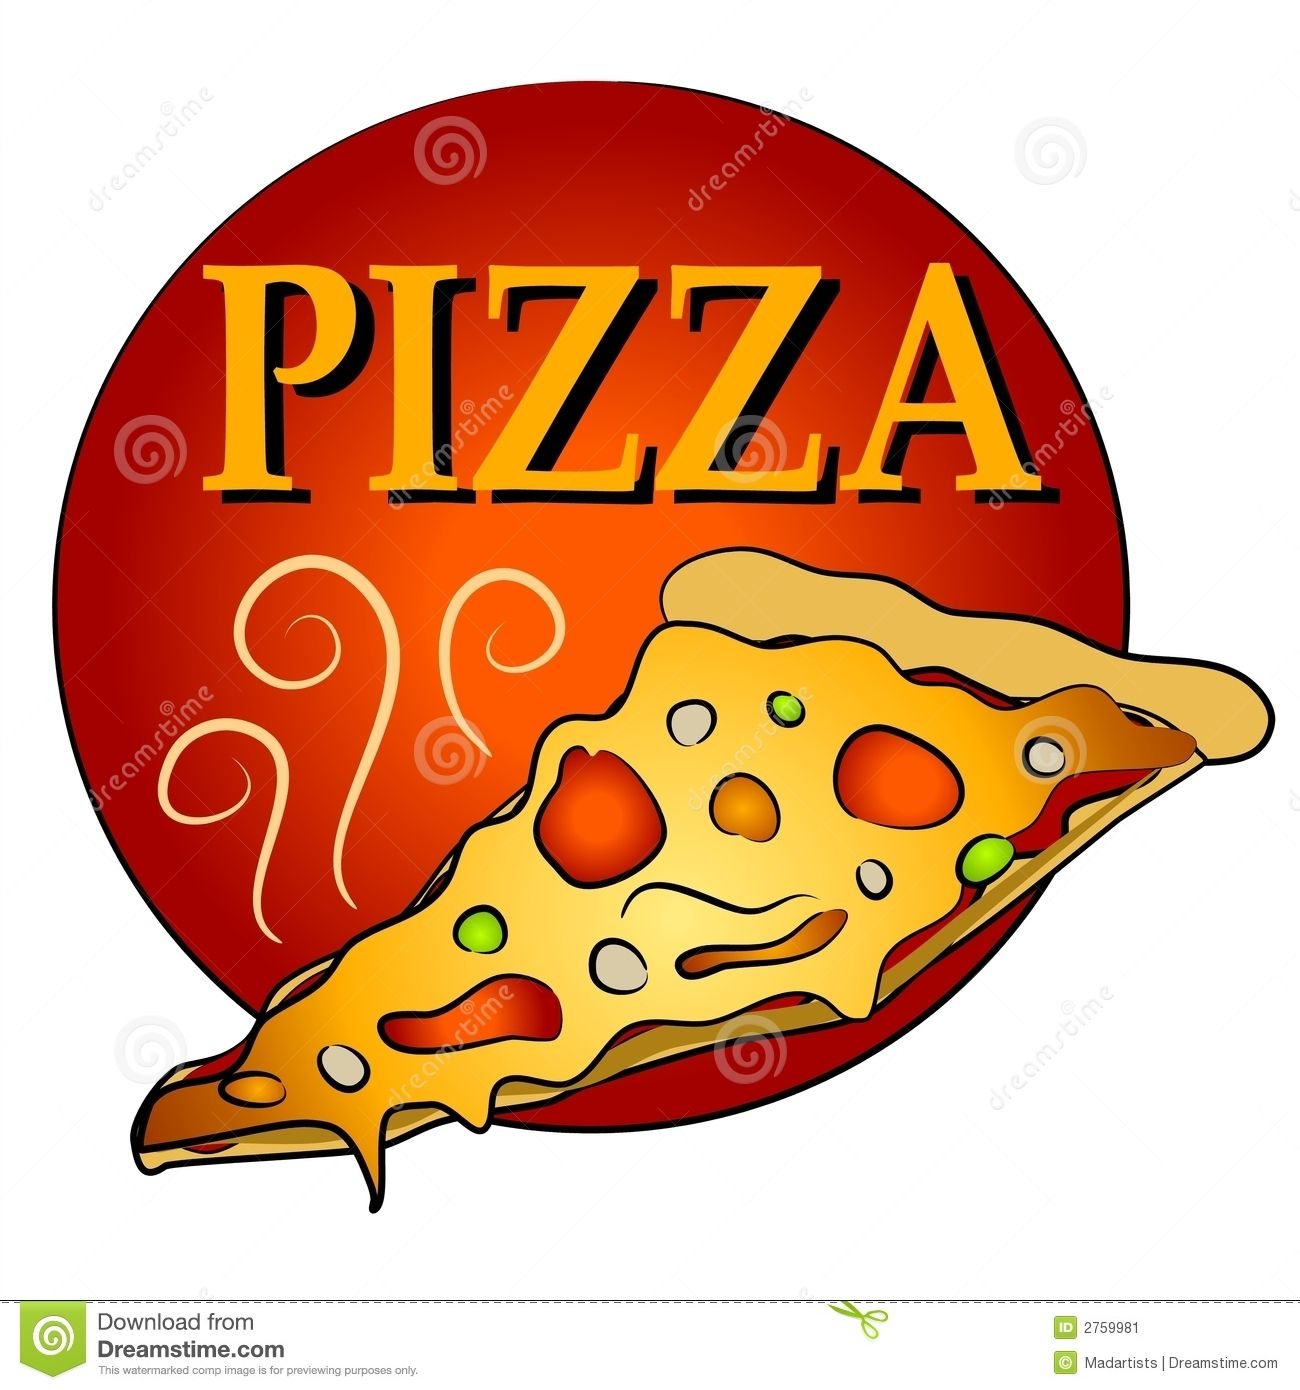 pizza clipart hd wallpapers download free pizza clipart tumblr rh pinterest com clipart pizza party clipart pizza party